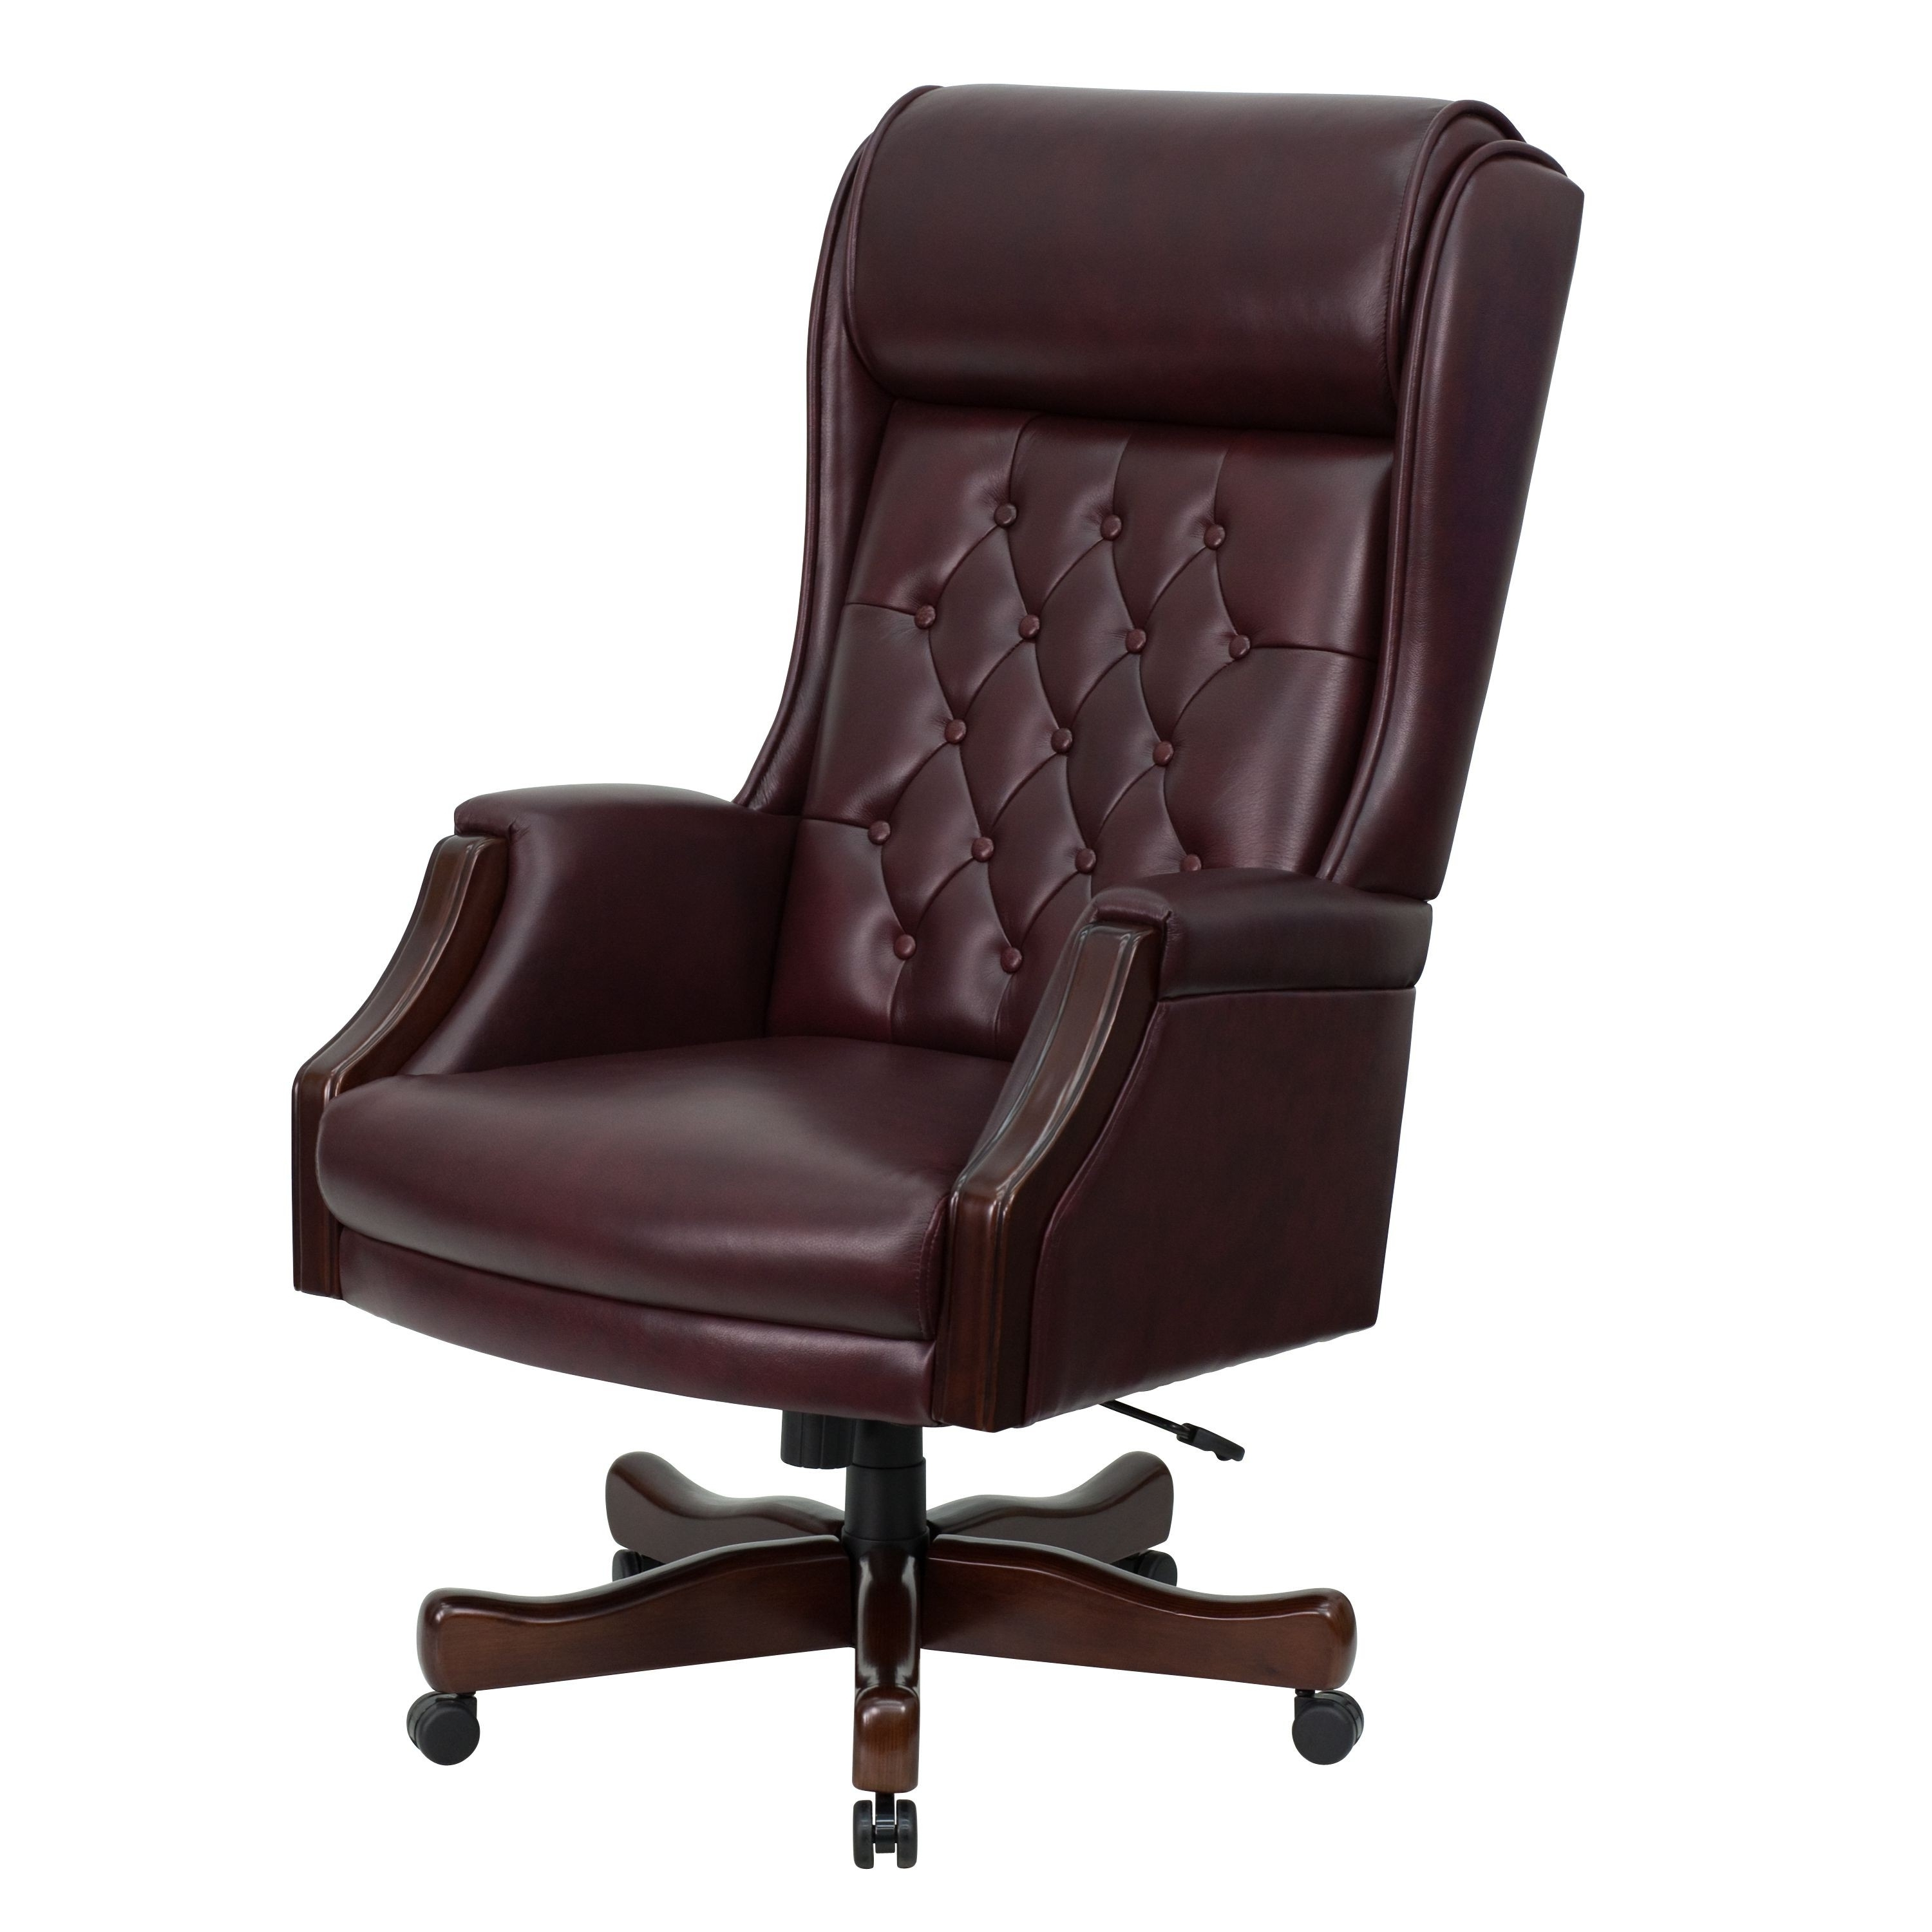 Flash Furniture Kc C696Tg Gg Tufted High Back Executive Leather Pertaining To Best And Newest High End Executive Office Chairs (View 13 of 20)